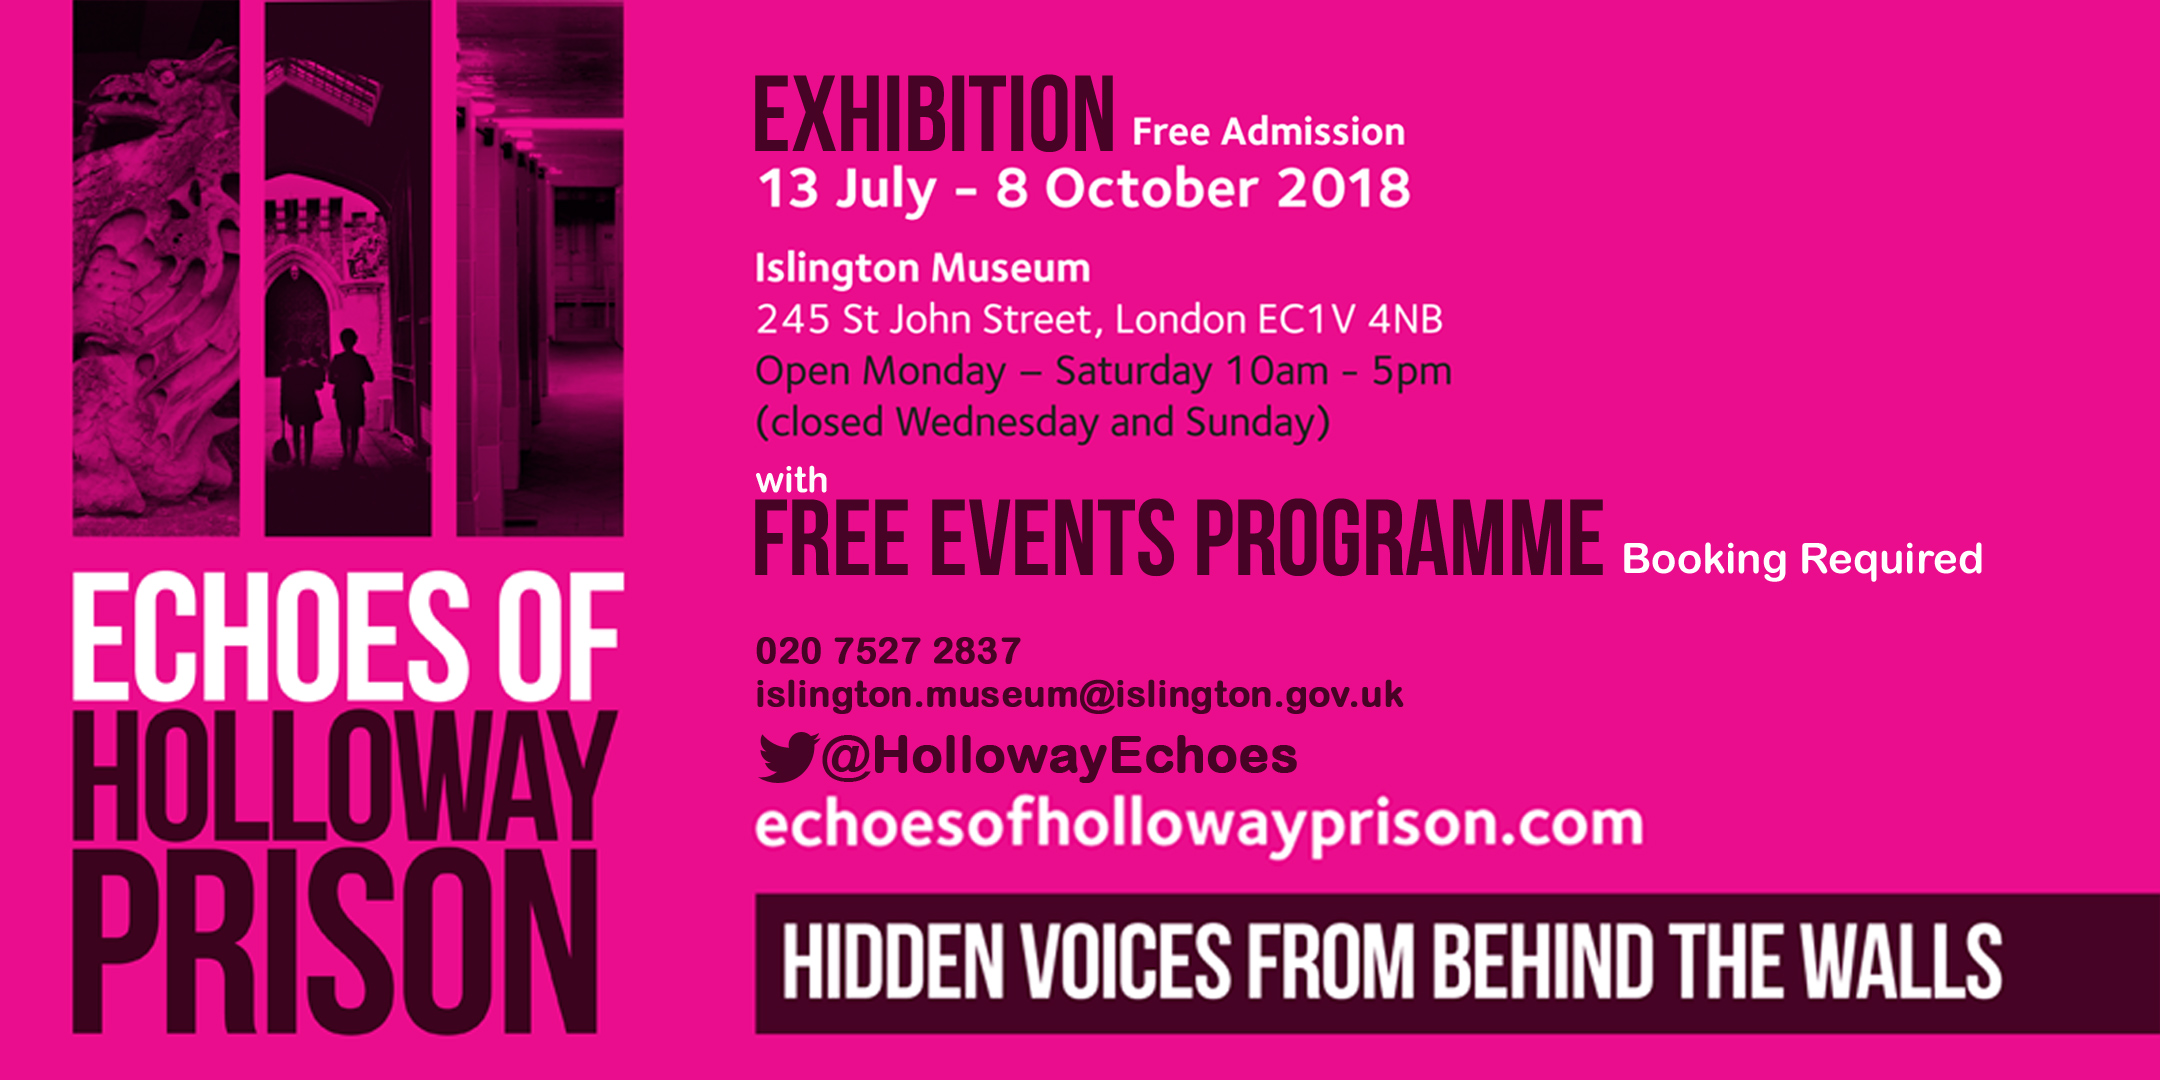 Echoes of Holloway Prison Exhibition & Events Programme Flyer